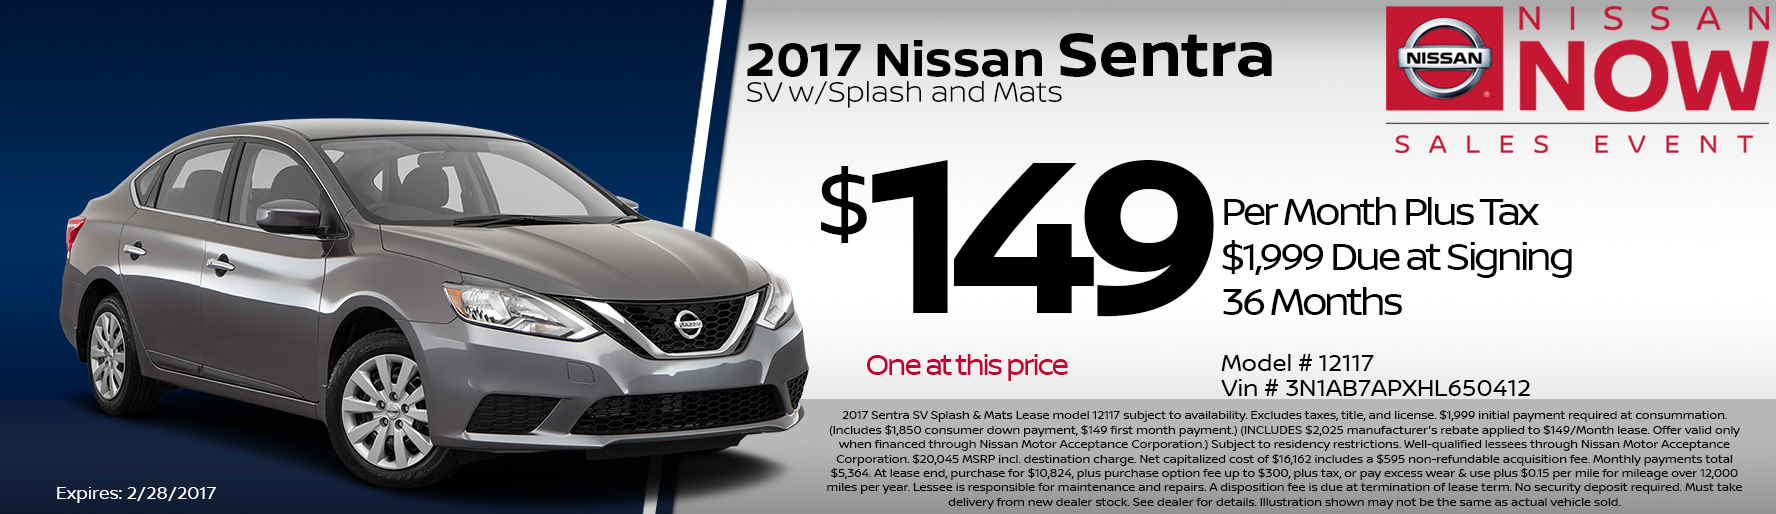 Nissan Sentra special deal in Mission Hills